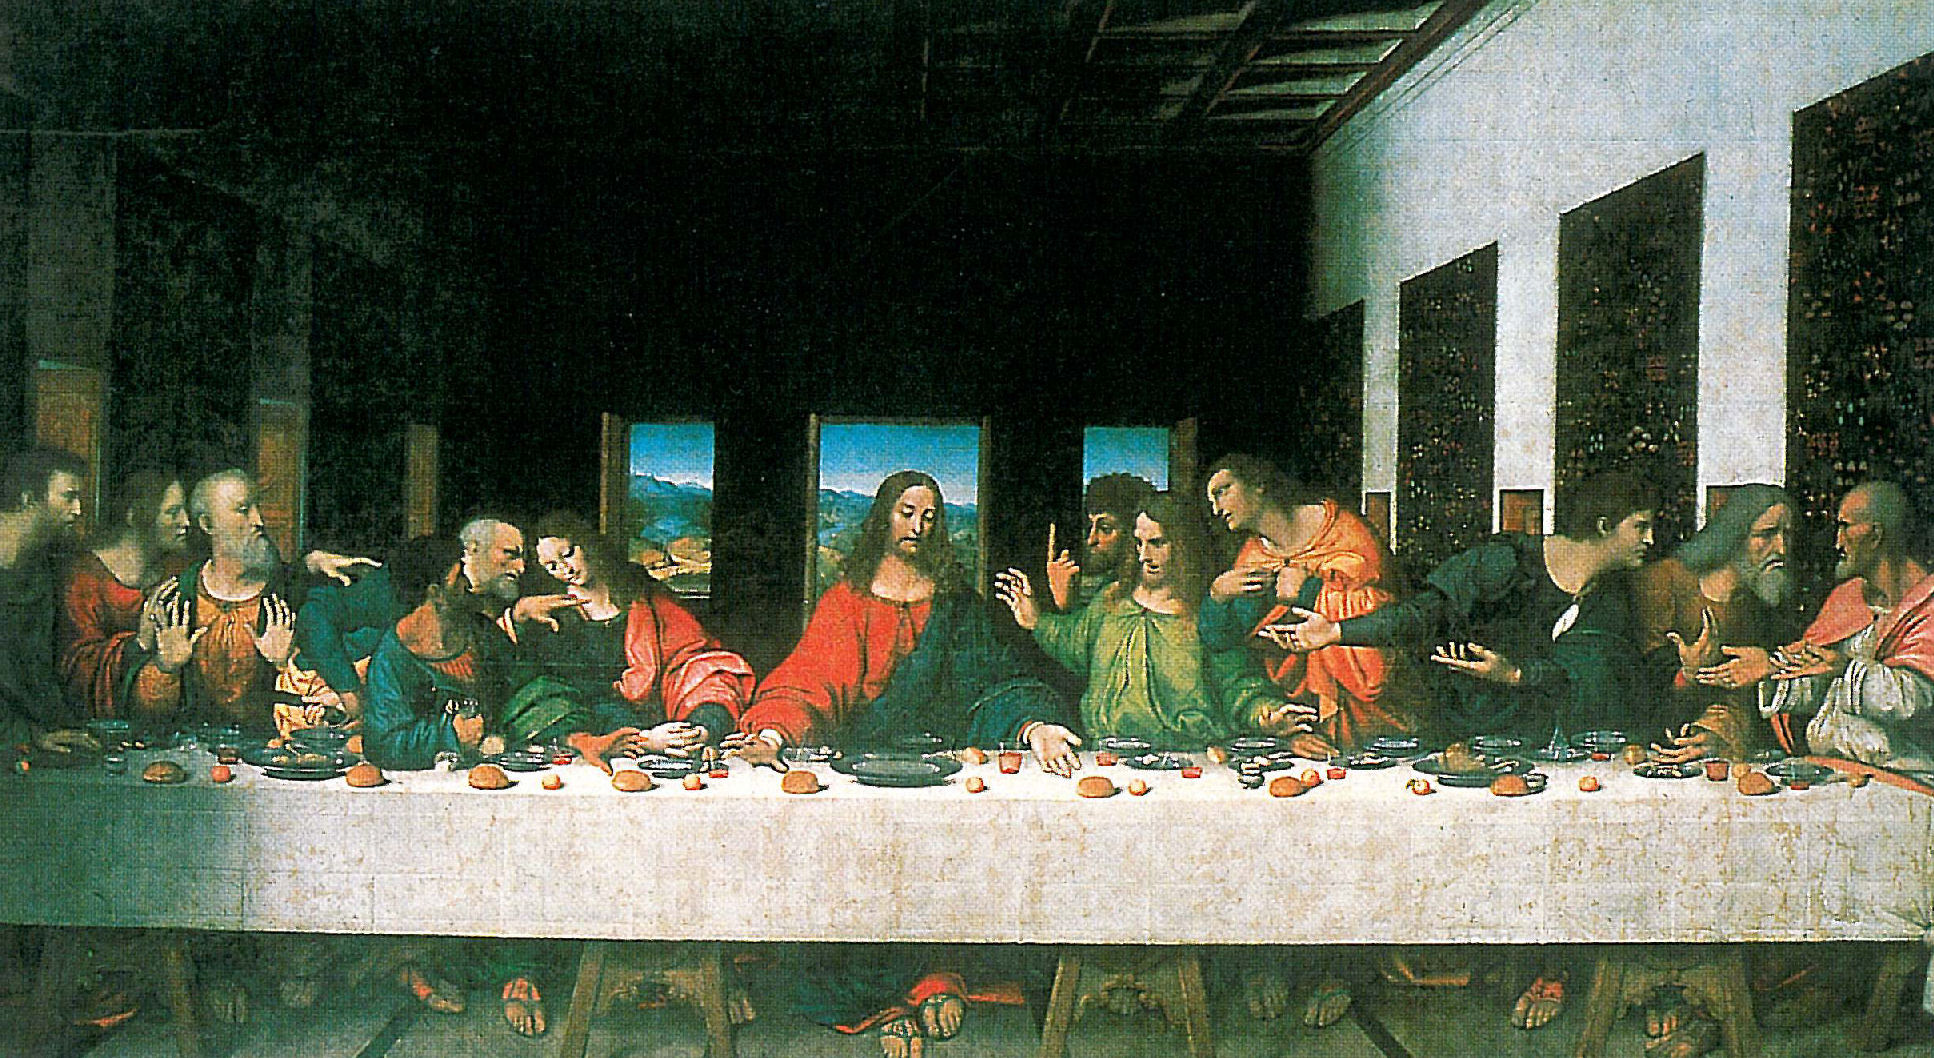 Last_supper_copy_by_unknown_artist.jpg